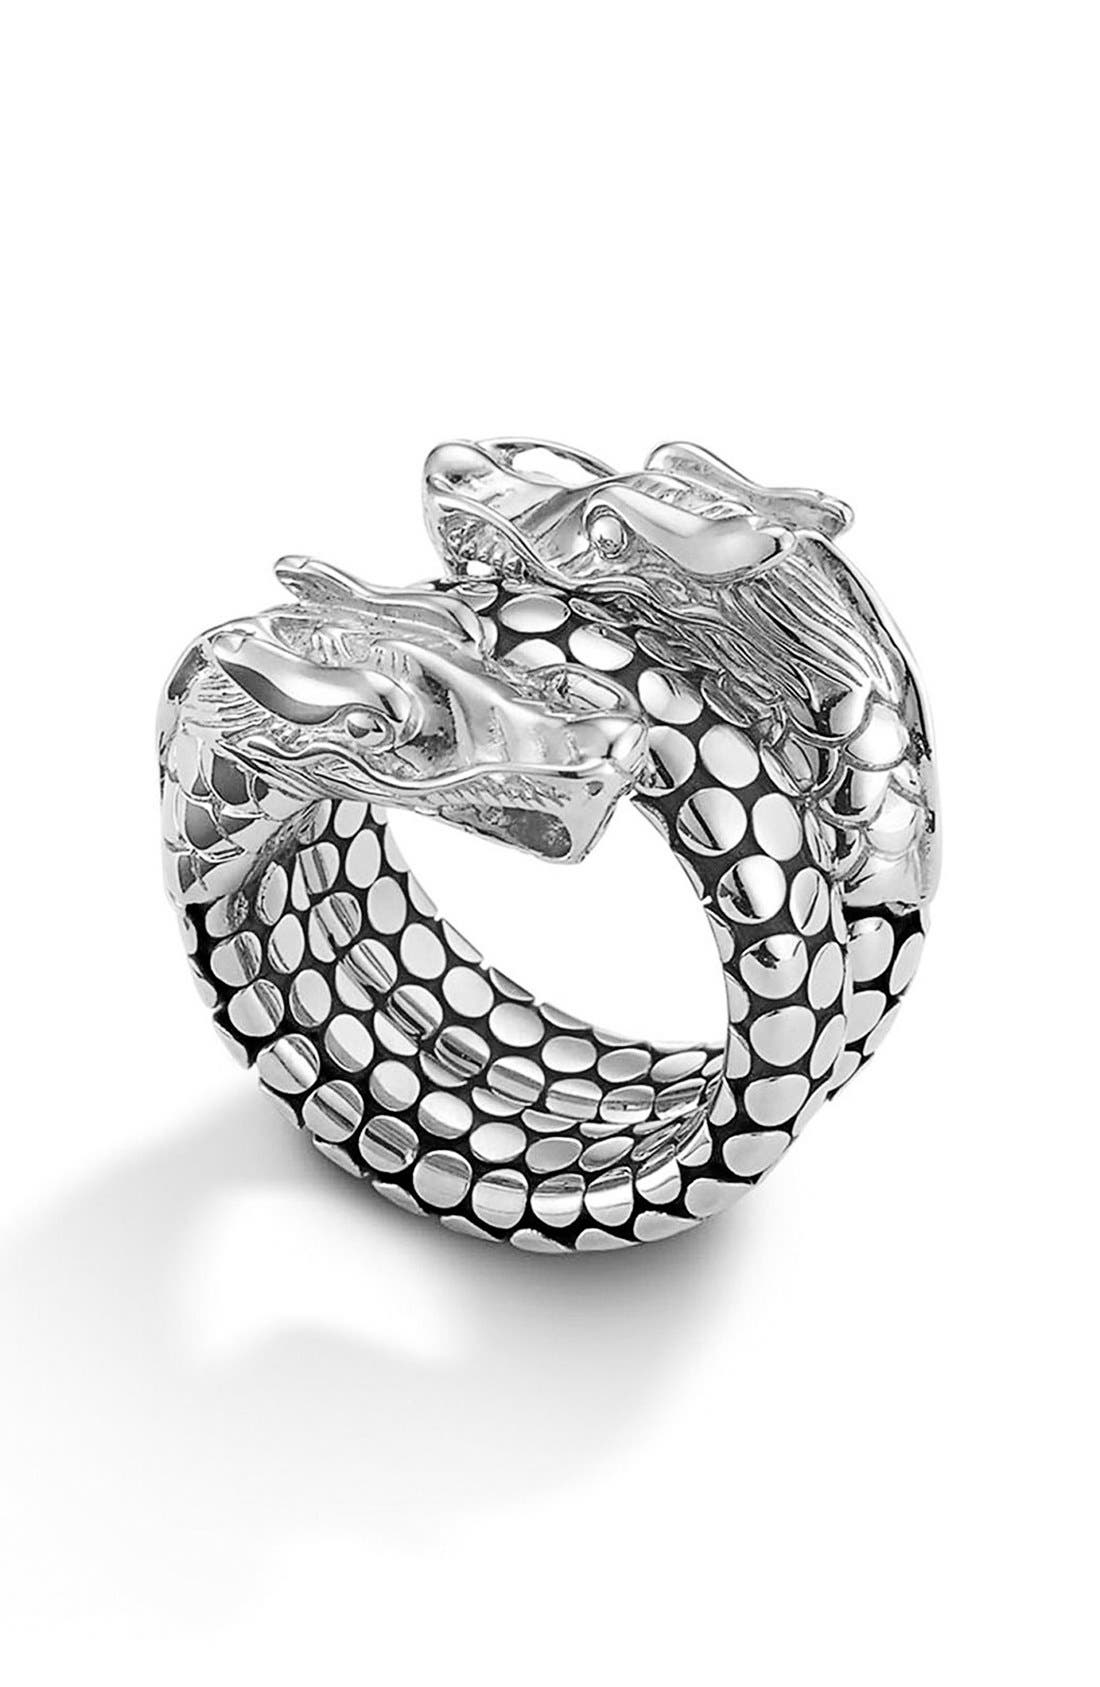 'Legends' Dragon Coil Ring,                         Main,                         color, Sterling Silver